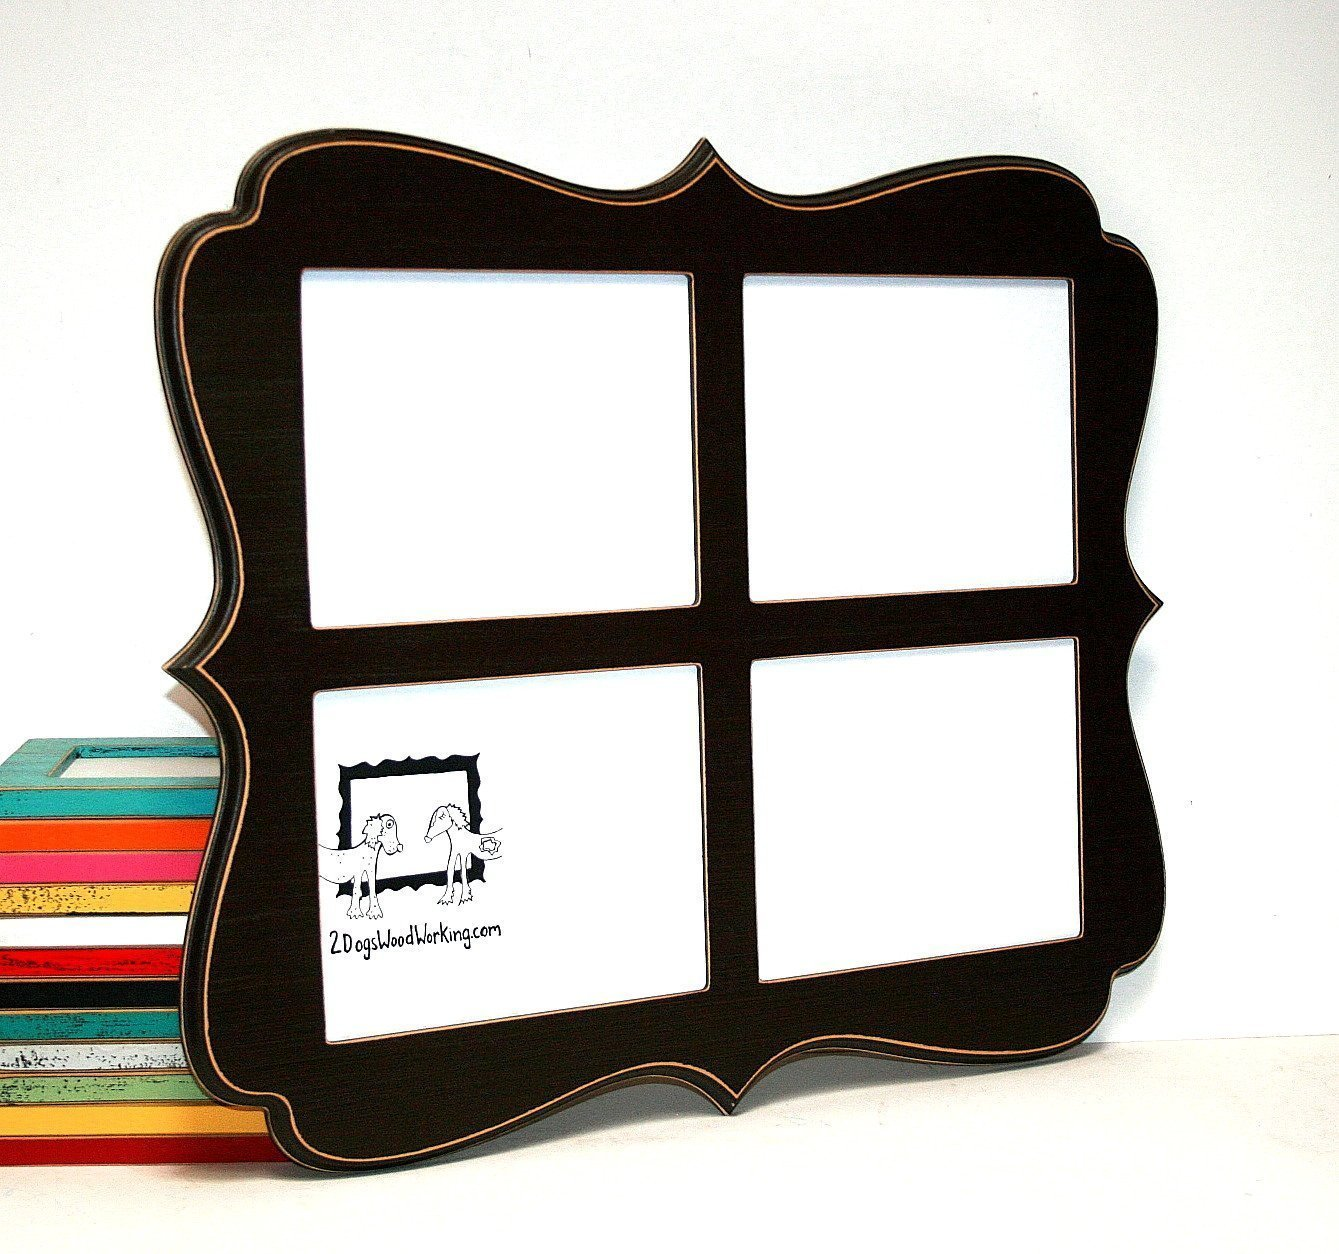 Amazon.com: Collage picture frame 4) 8x10 openings, vertical or ...